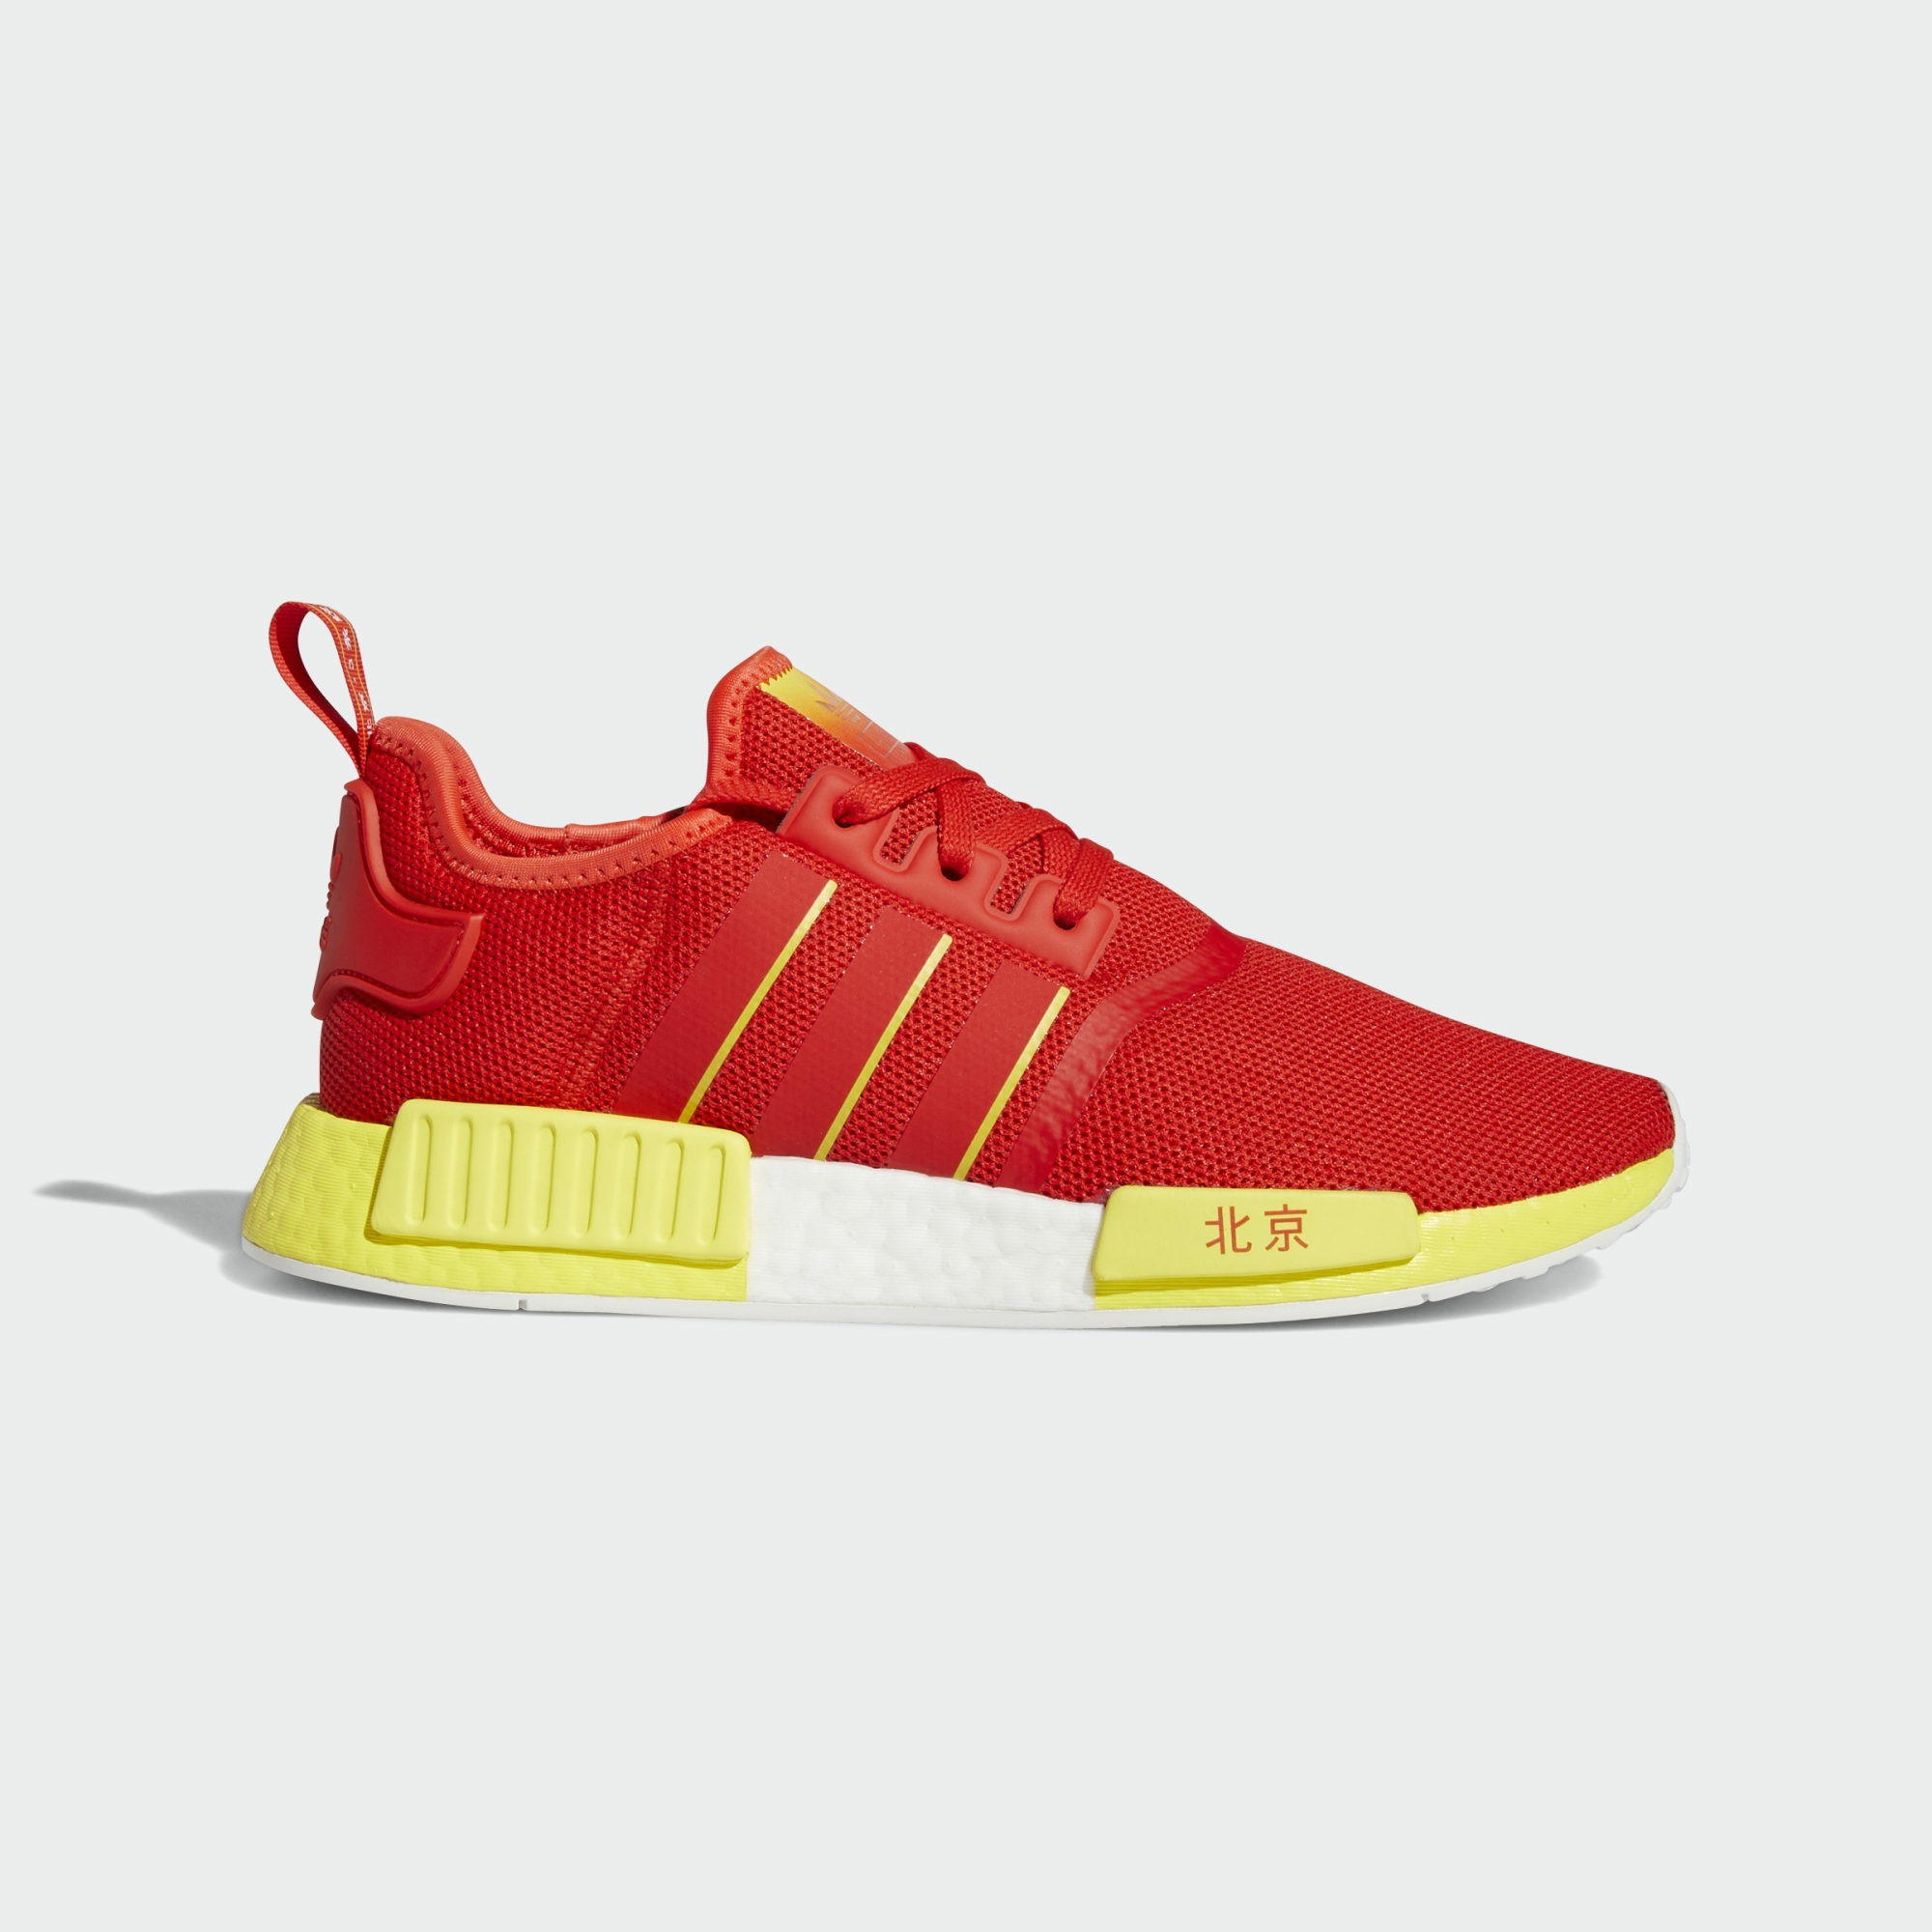 Adidas NMD_R1 Beijing FY1262 Red/Yellow/White